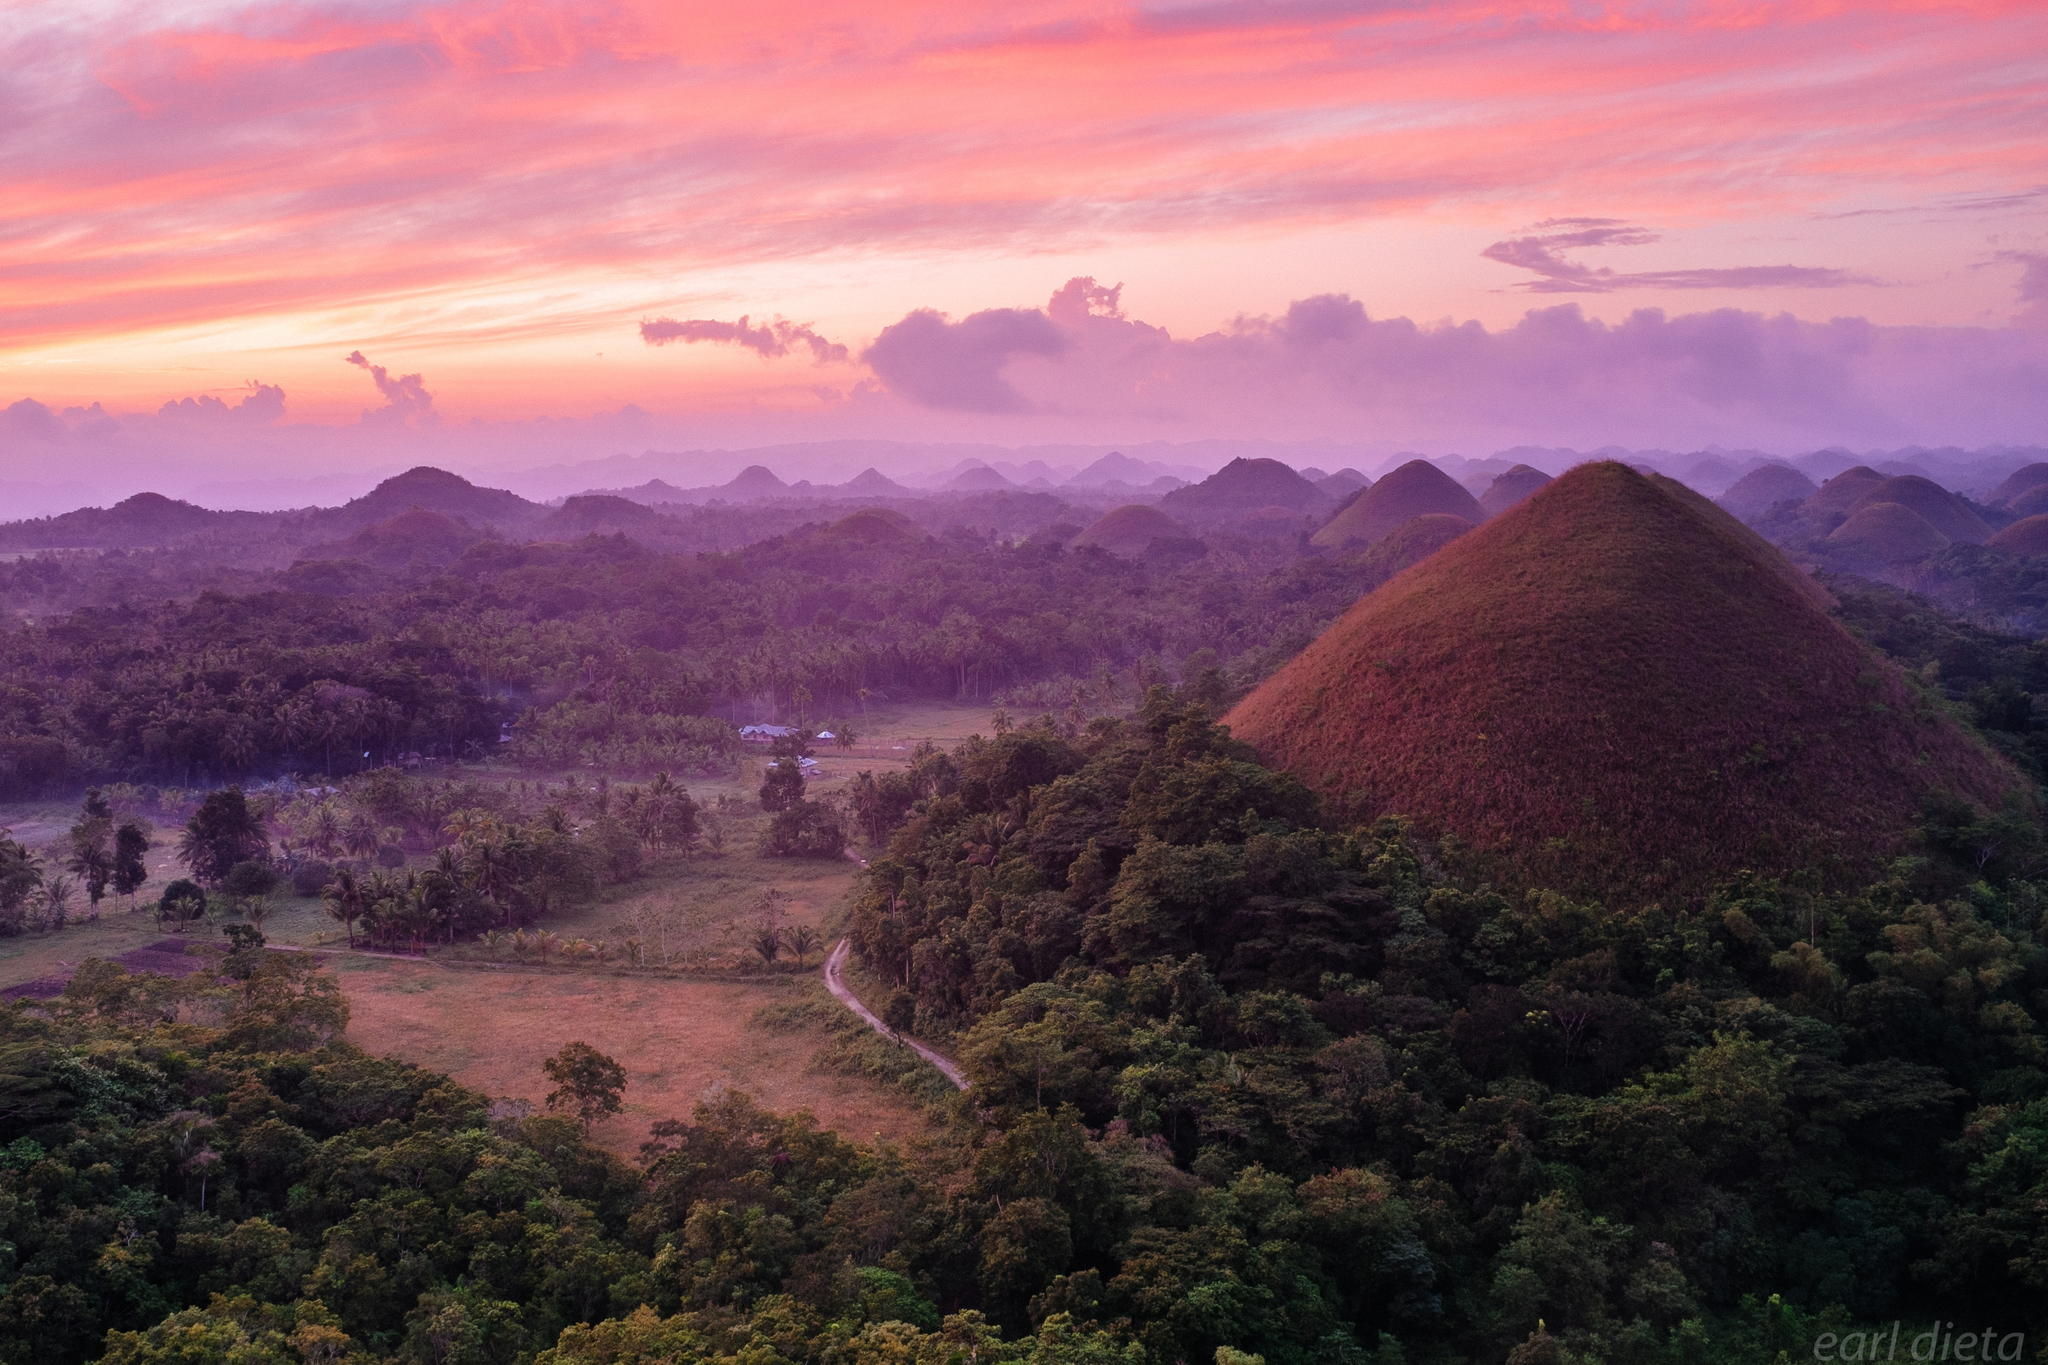 Chocolate Hills in Bohol Province, Philippines. by Earl Dieta